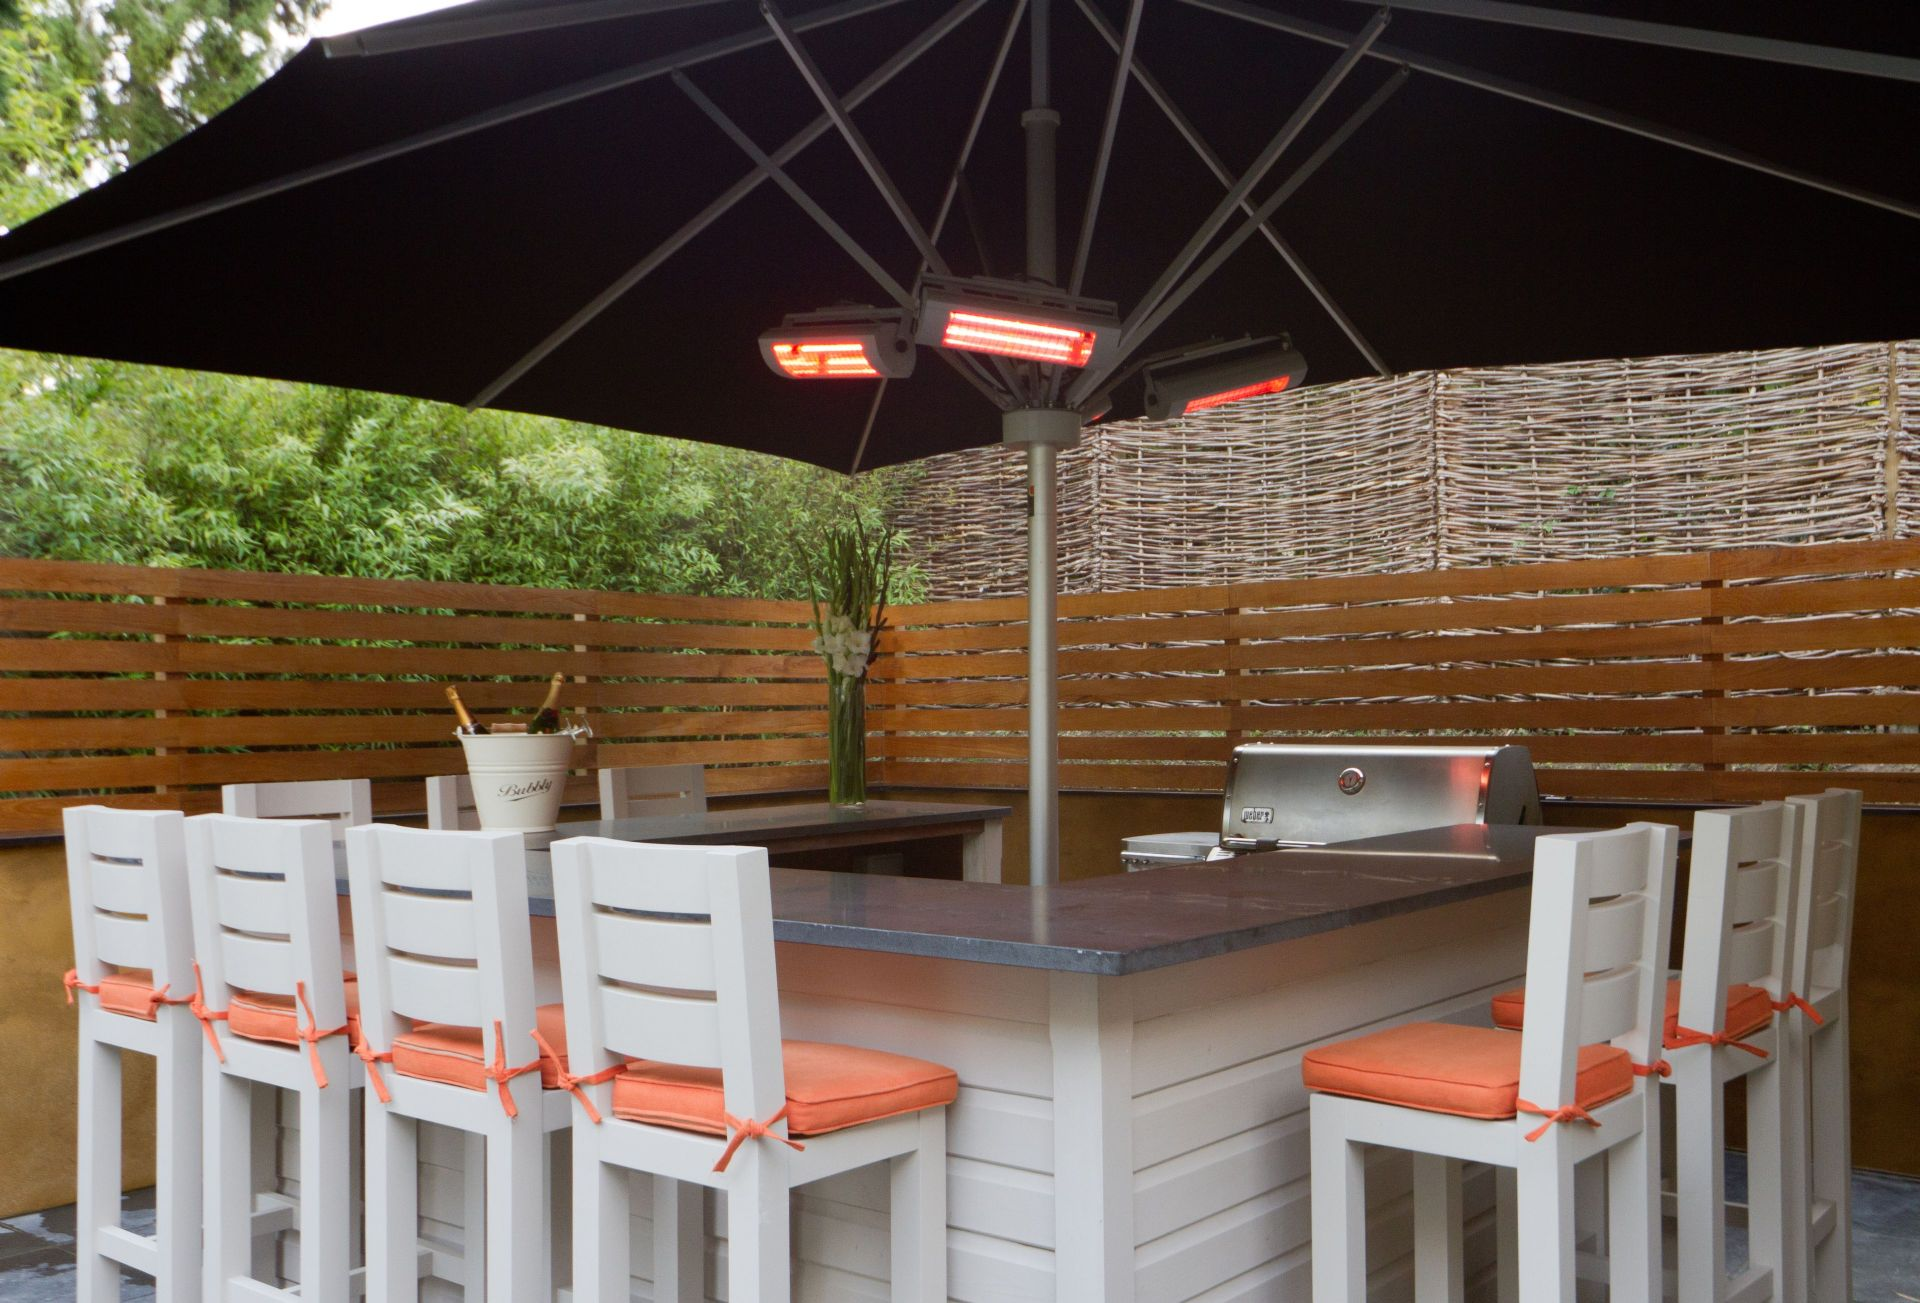 Outside:  An outdoor gas fire as well as a bar area with stools, two butler sinks, a large stainless drinks cooler and a gas barbecue